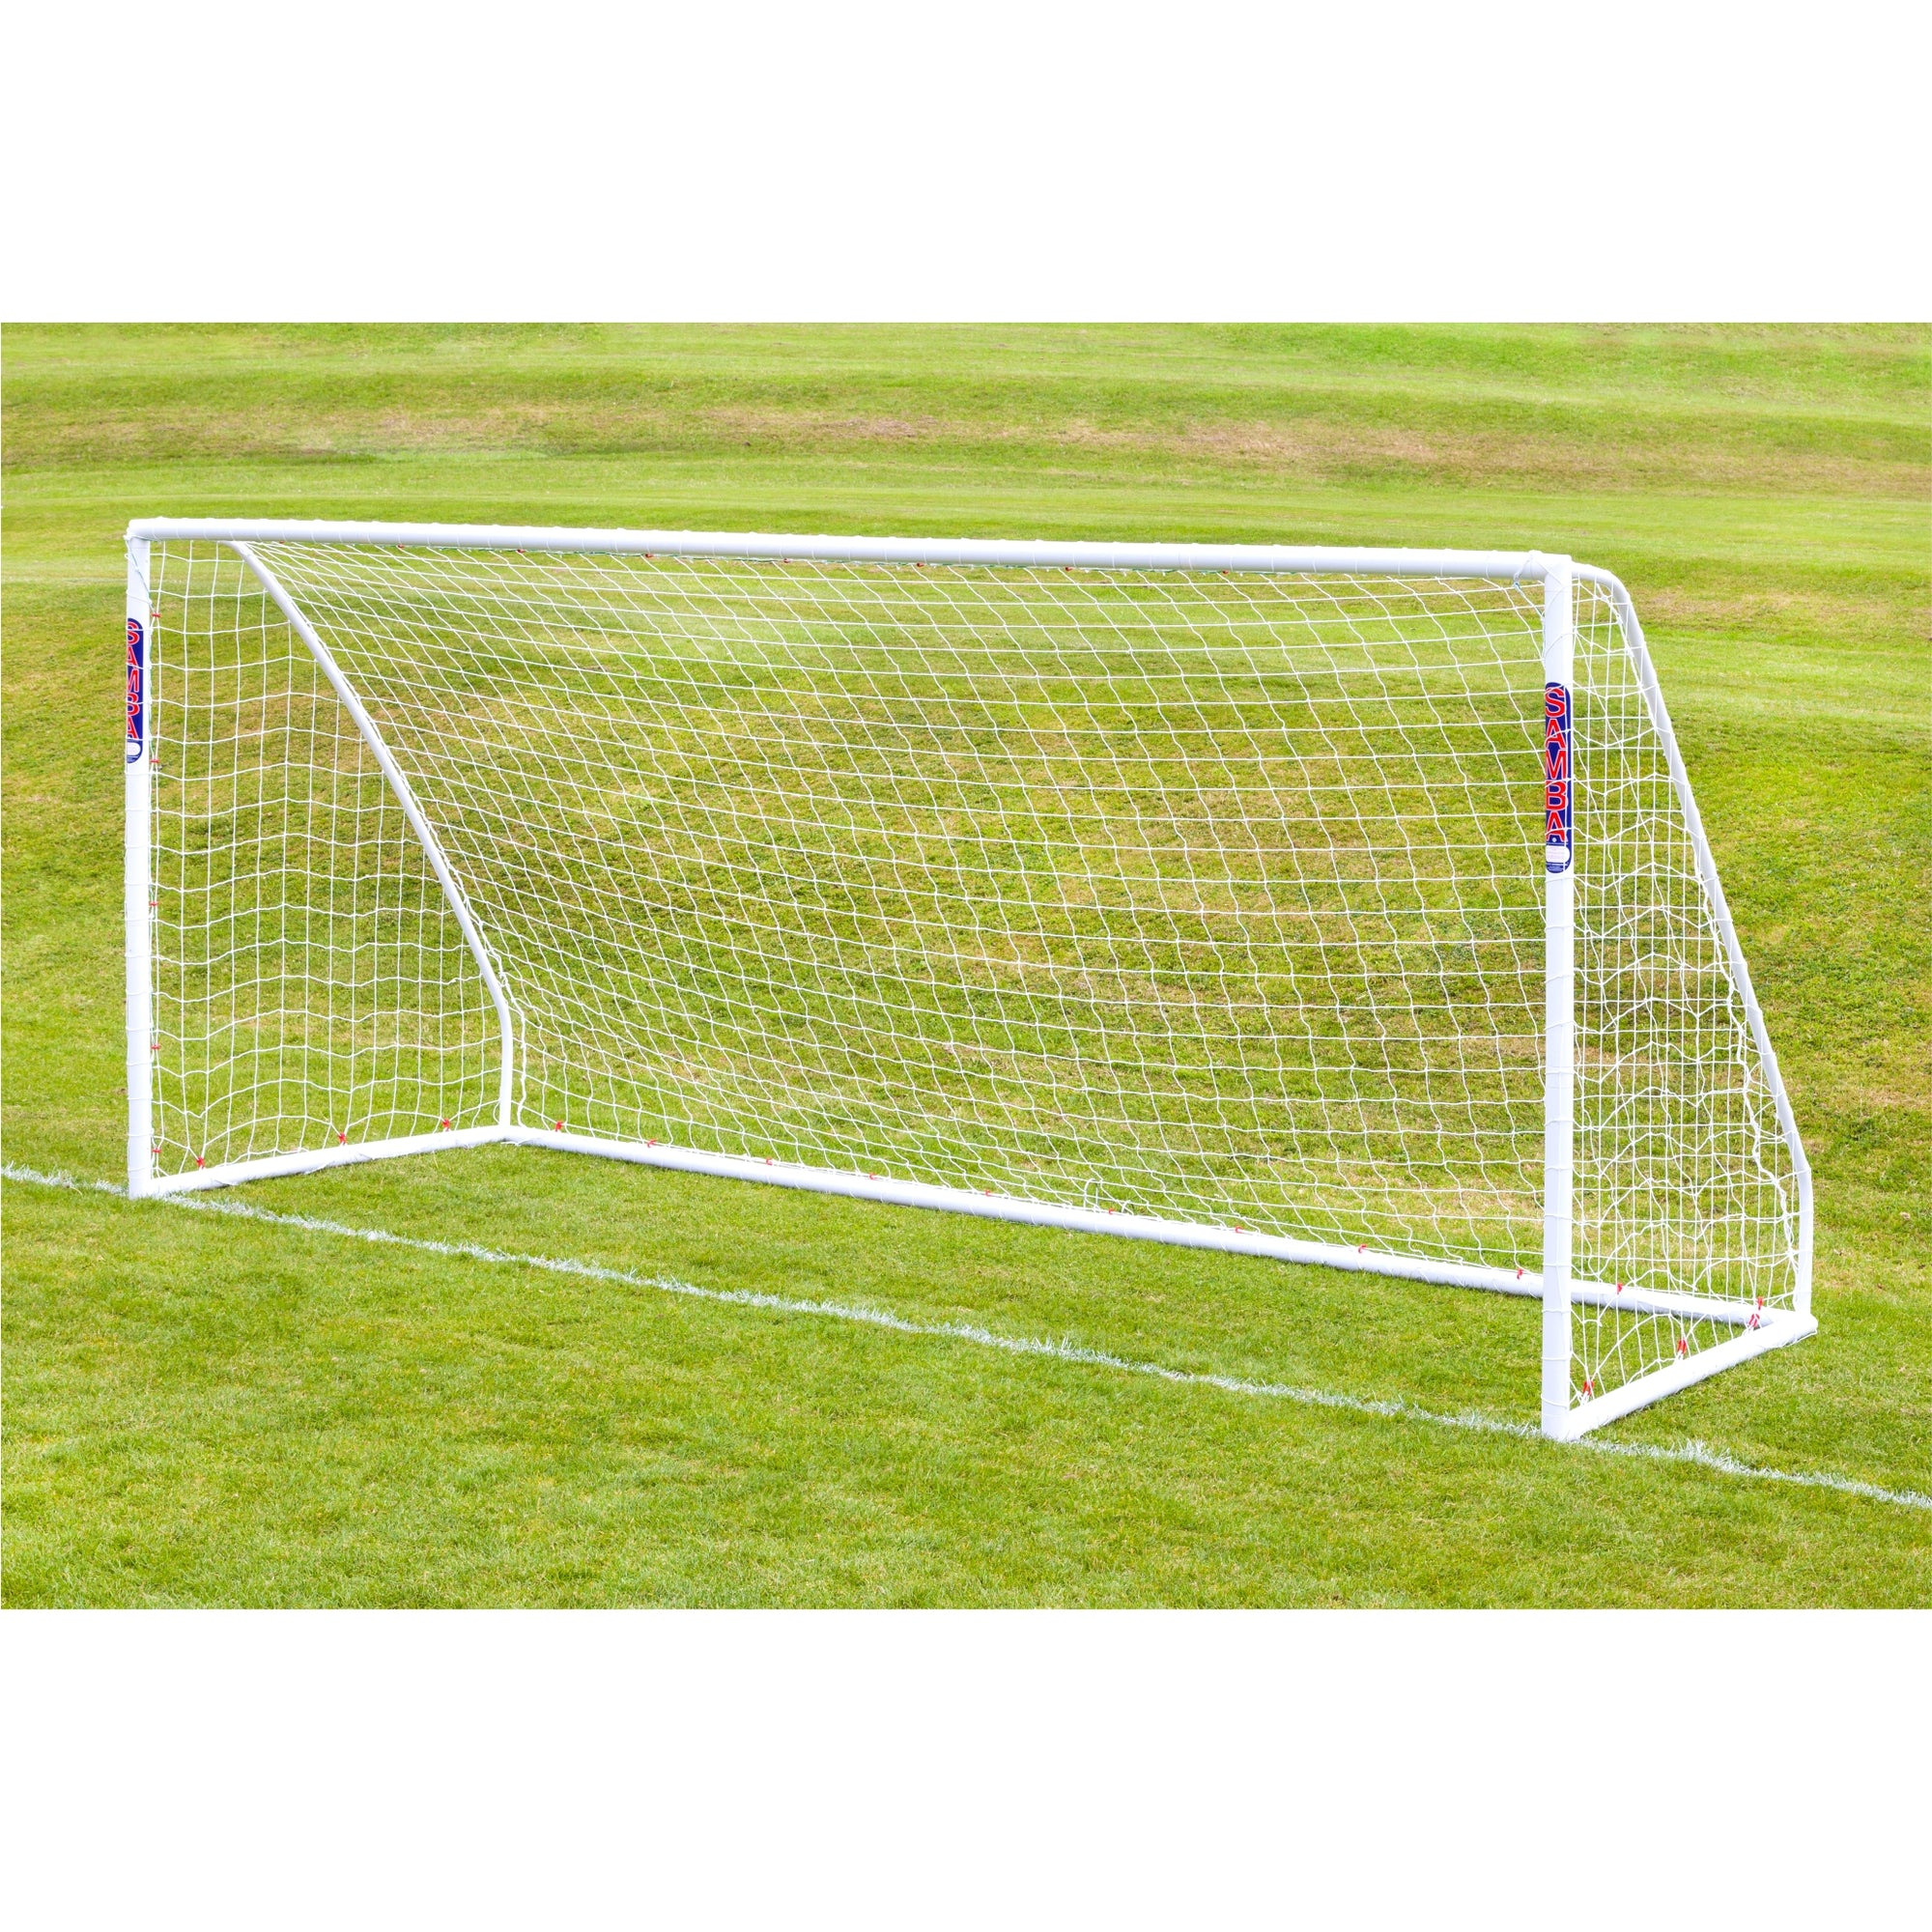 Samba 16x7 Match goal in white with white net